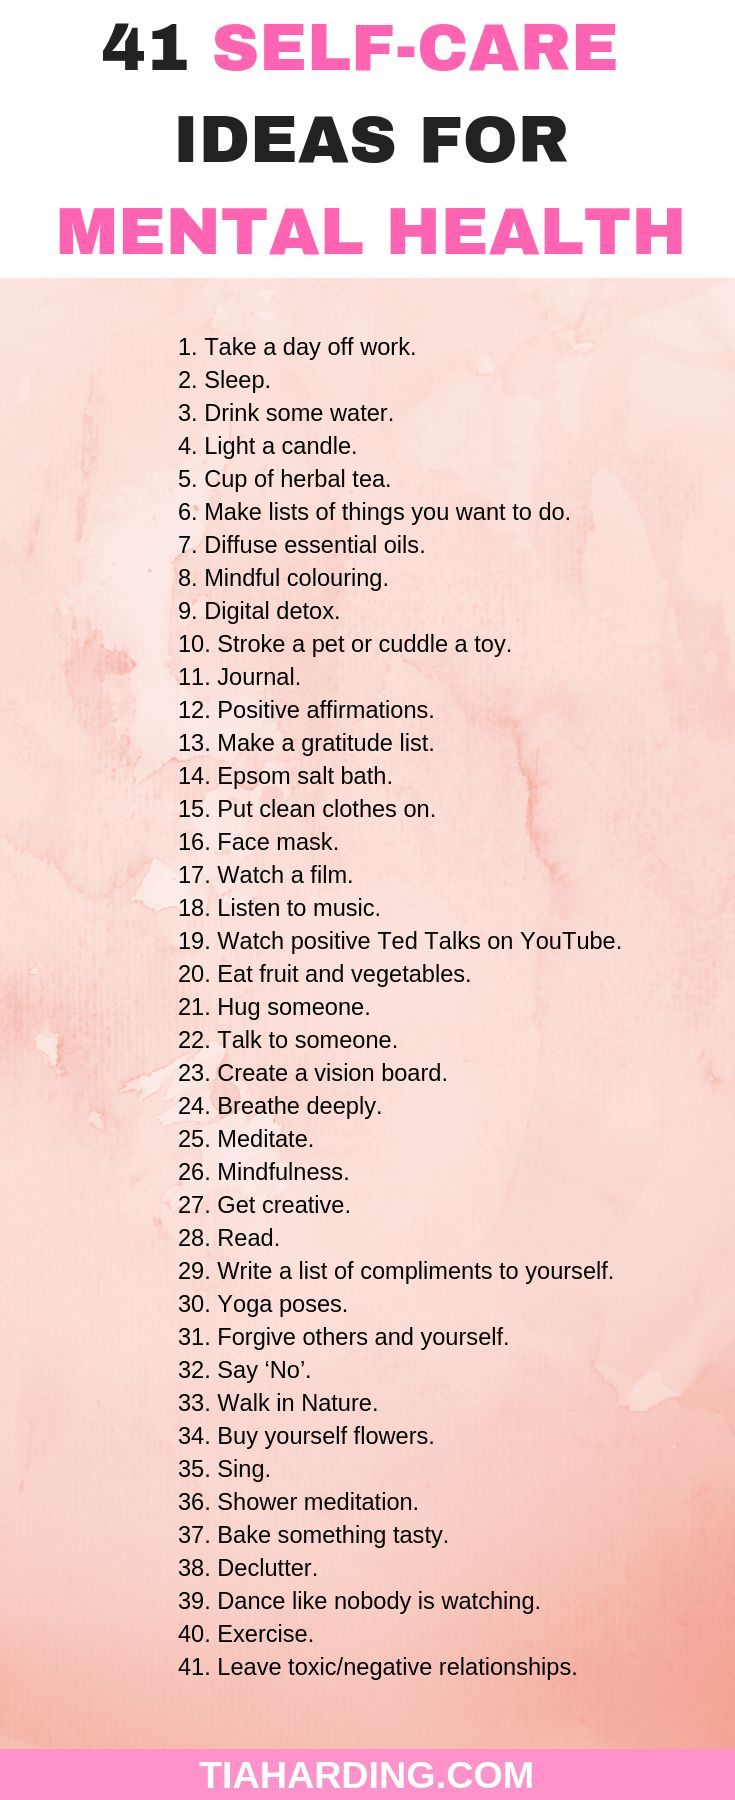 Use these 41 selfcare ideas to improve your mental health and wellbeing